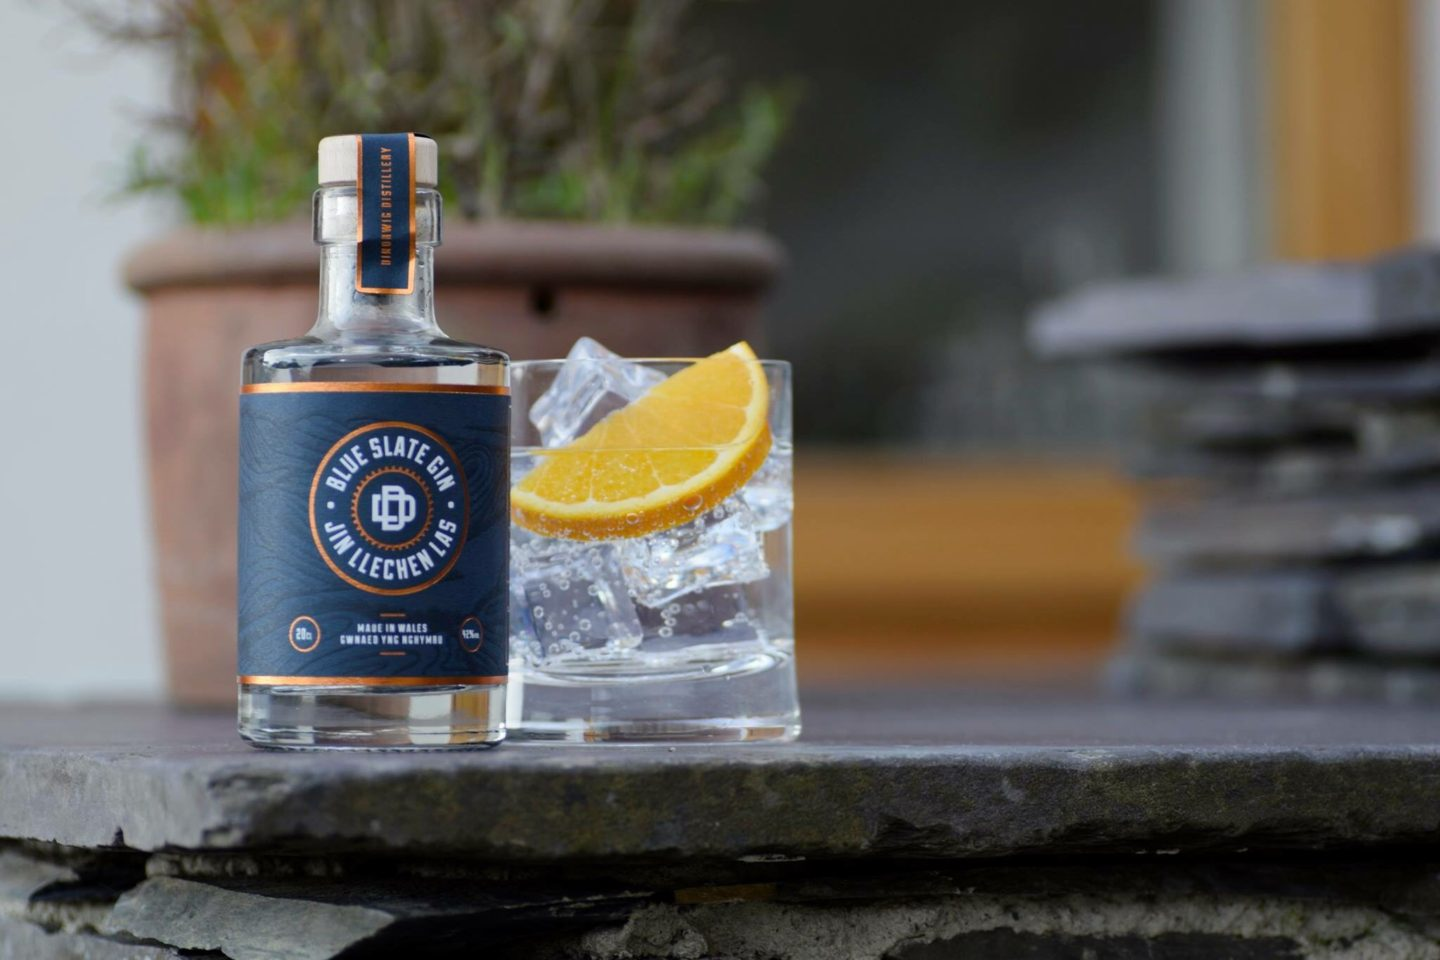 Photo of a Blue Slate Gin with a glass next to it